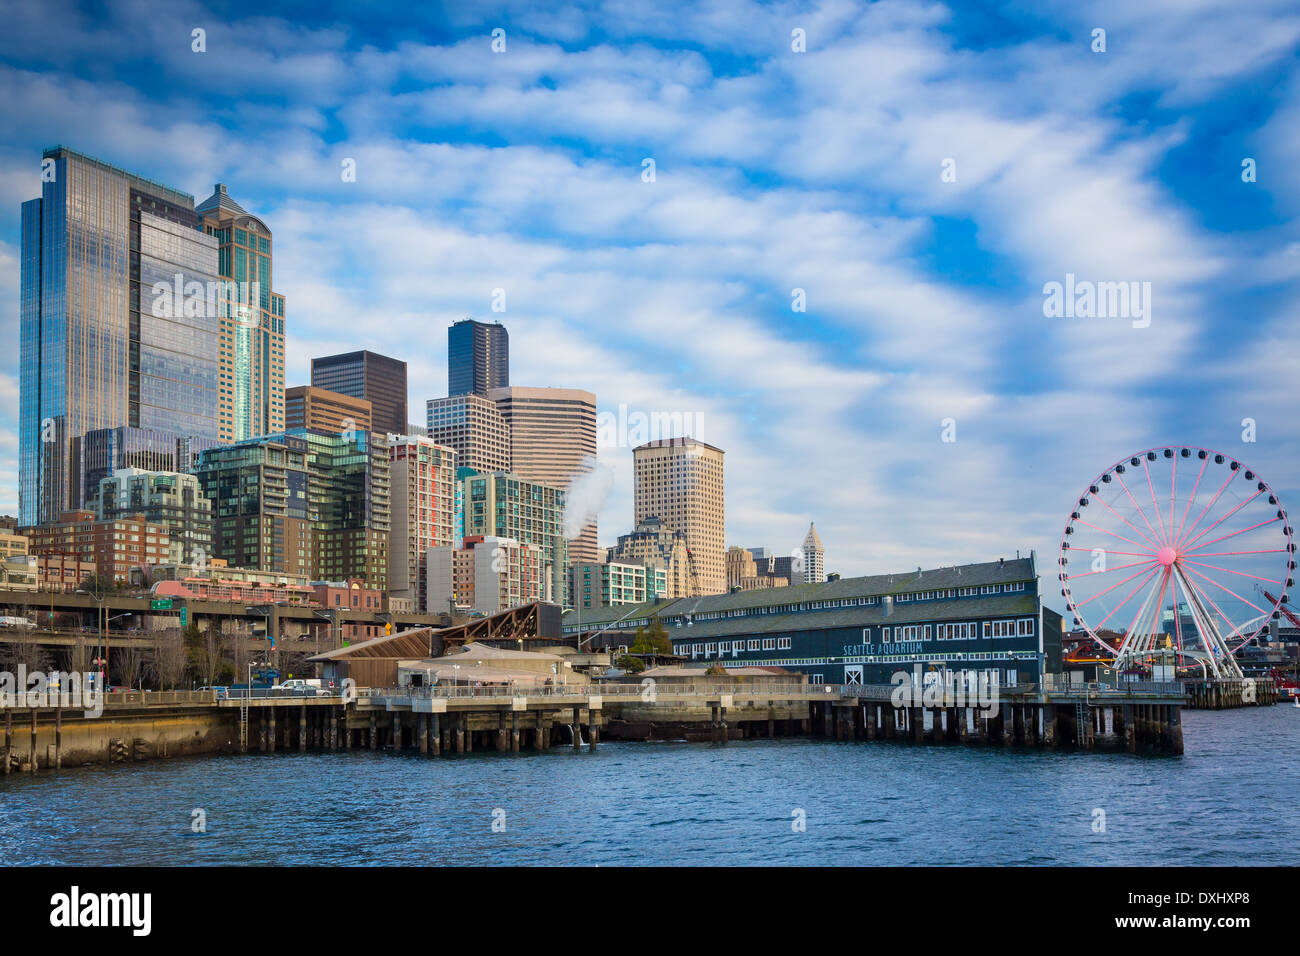 Seattle skyline from Pier 66 - Stock Image